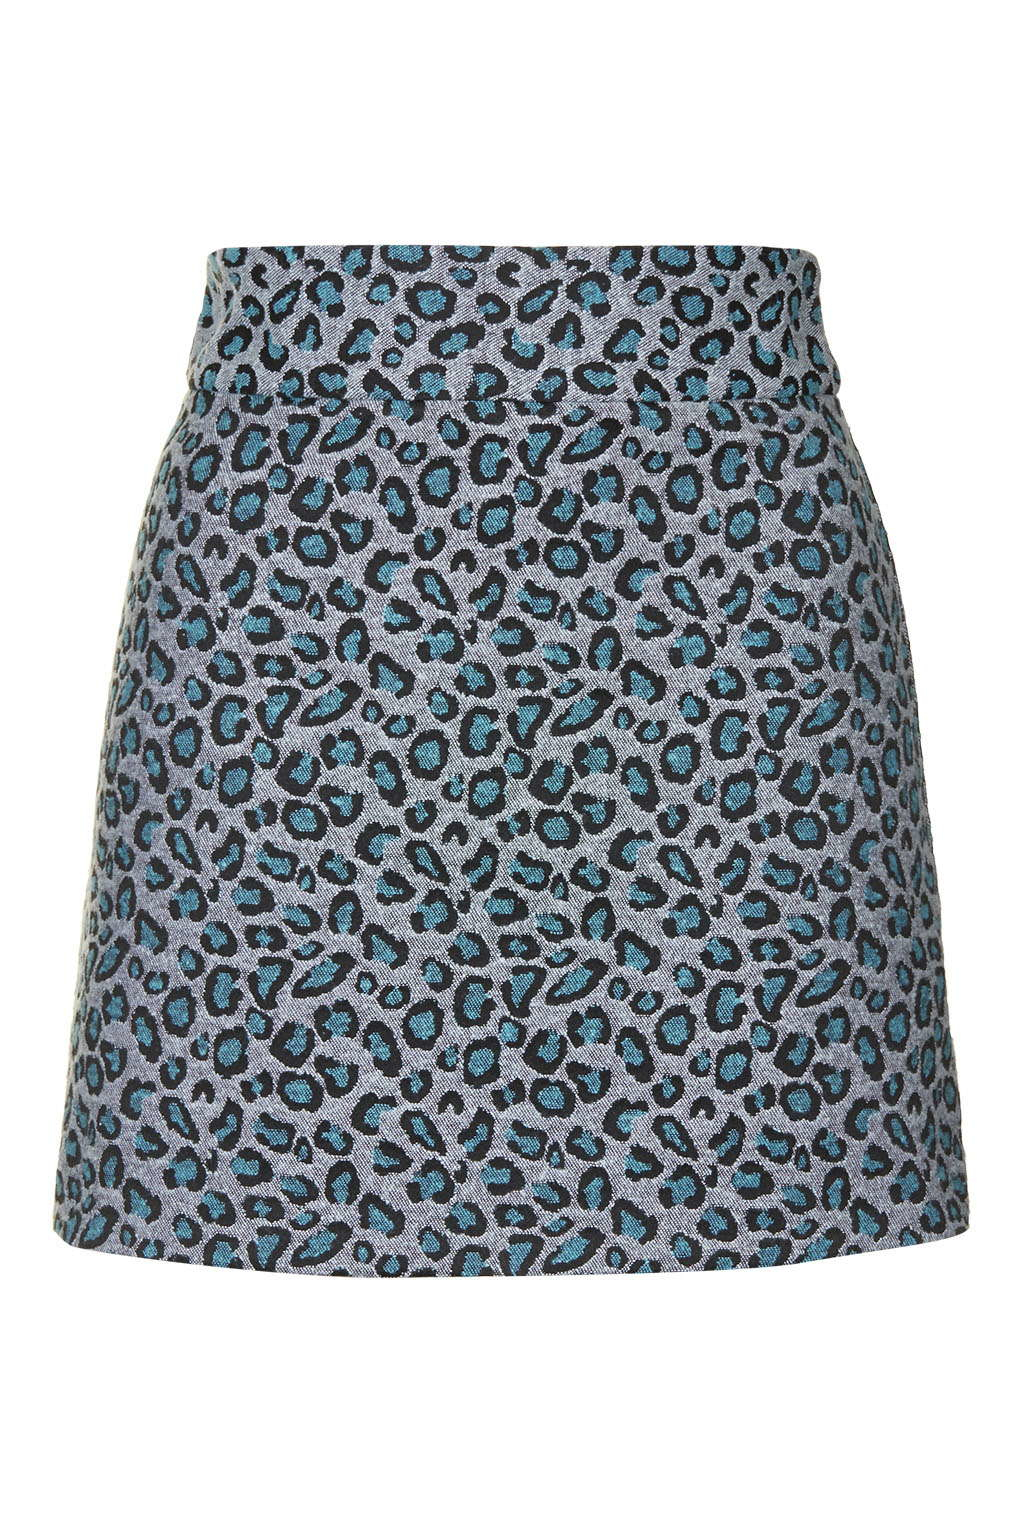 Topshop Animal Print A-line Skirt in Blue | Lyst